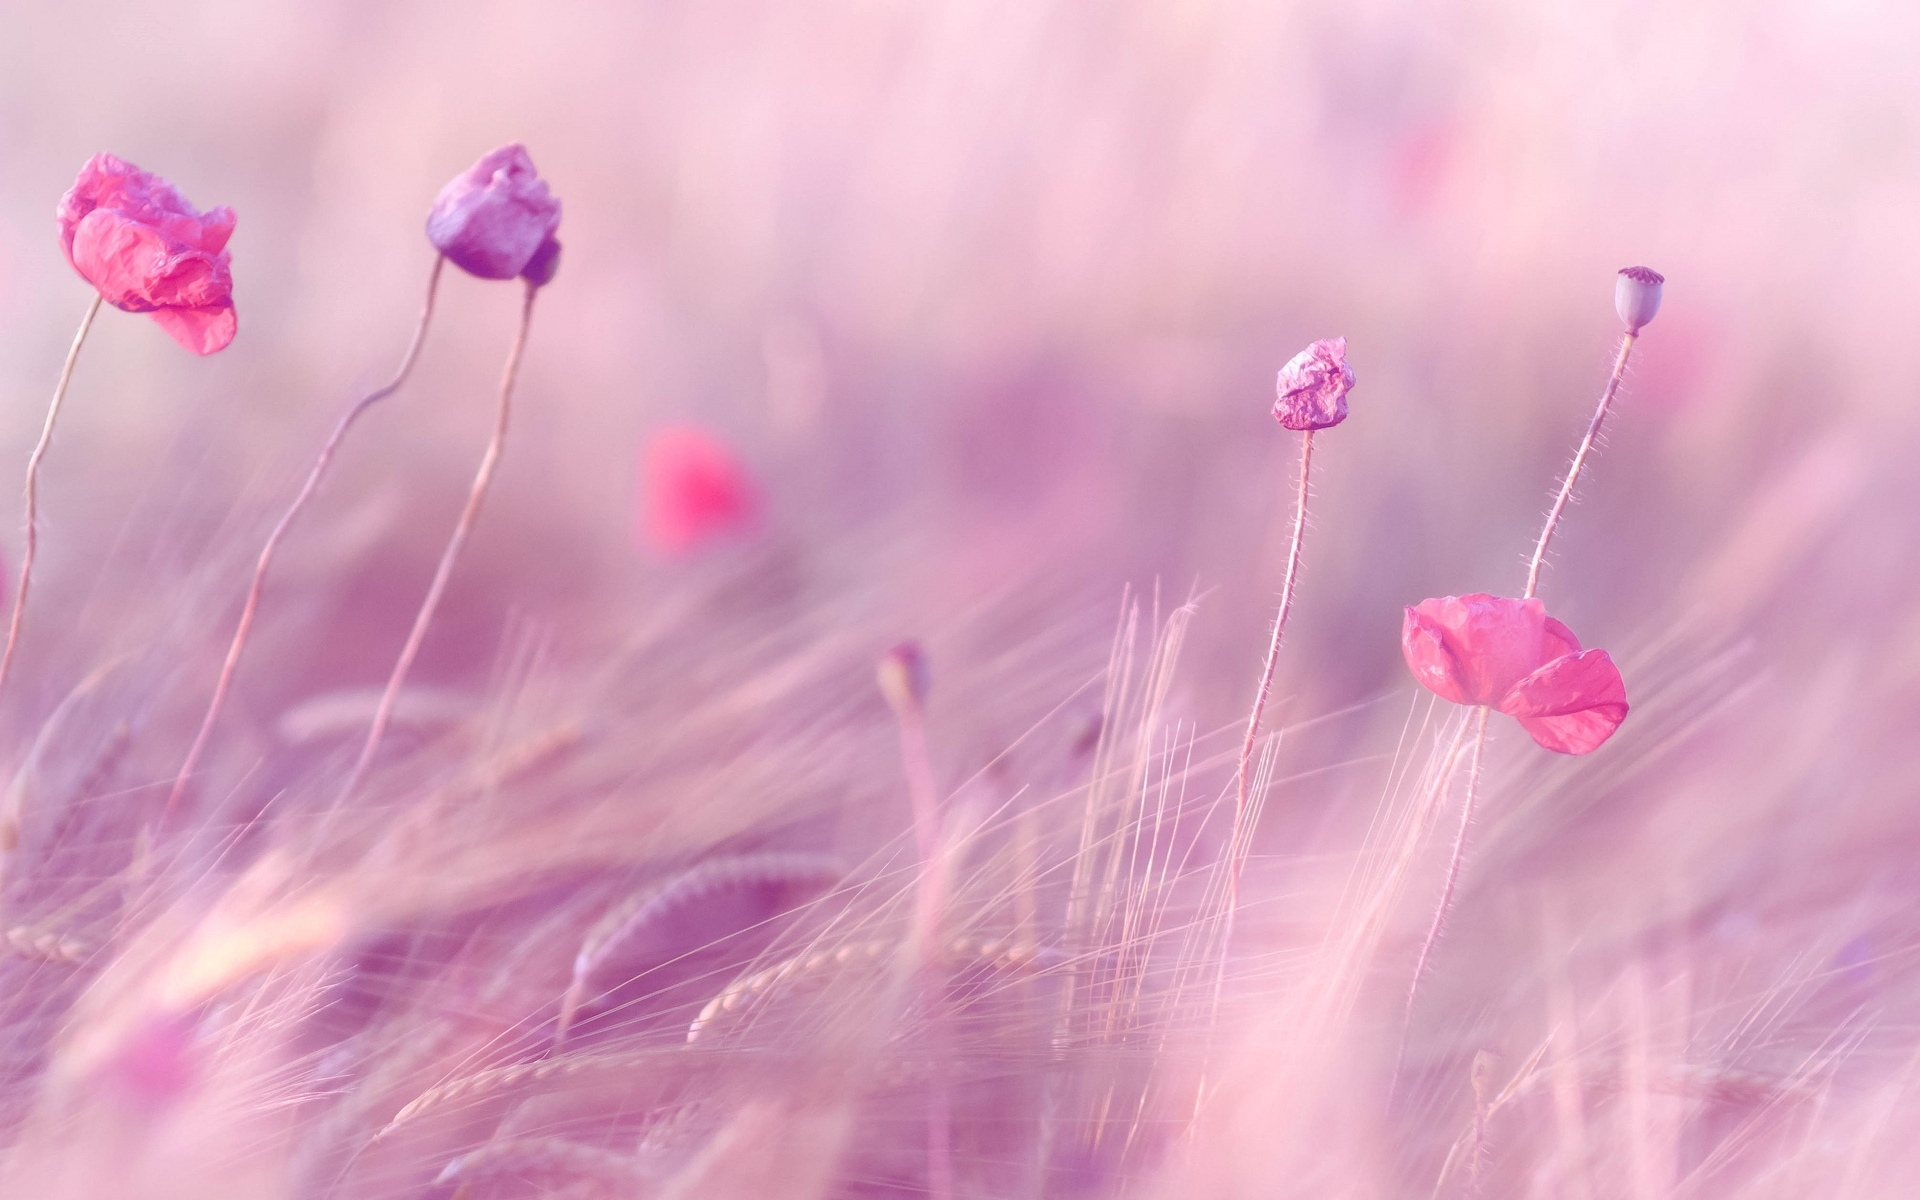 Background Images Flowers Pink 36 Background Images Flowers Pink 36